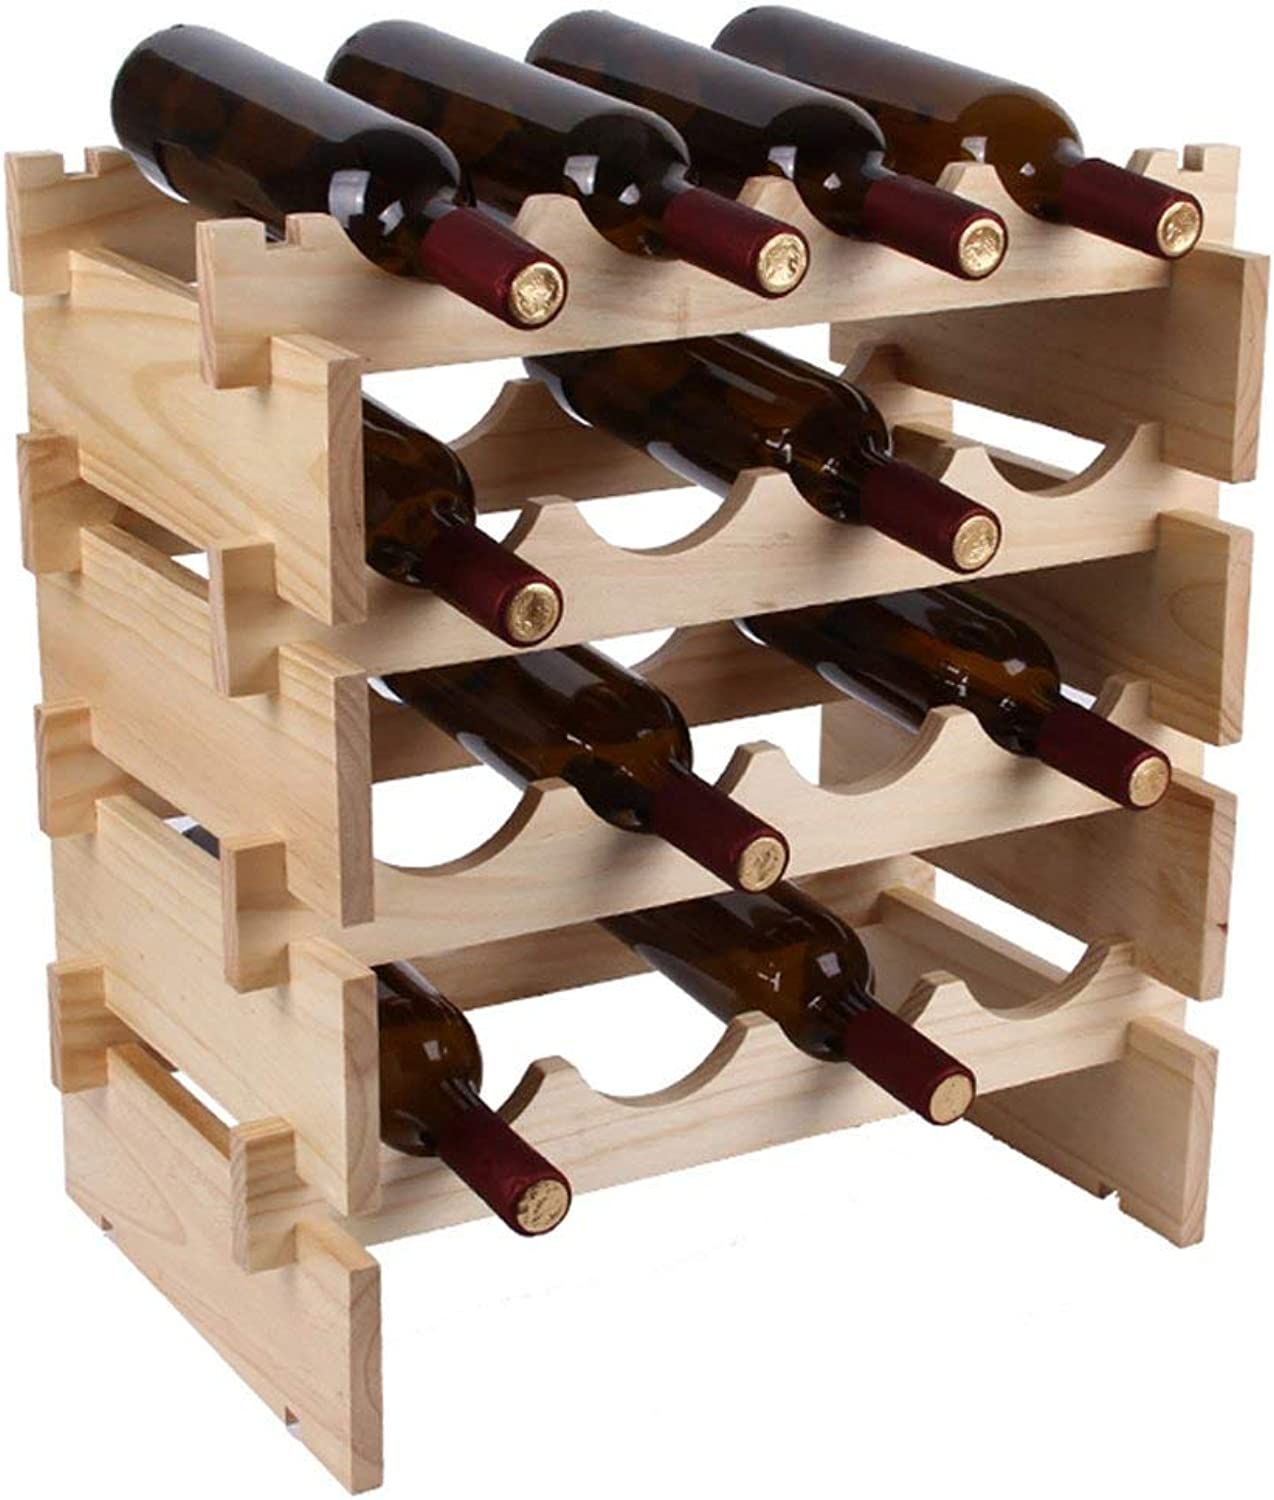 Red Wine Shelf Primary color European Wooden Wine Rack, Living Room Kitchen Household Simple Solid Wood Superimposed Wine Rack Decoration 50X32X28cm (Size   B) (Size   D)